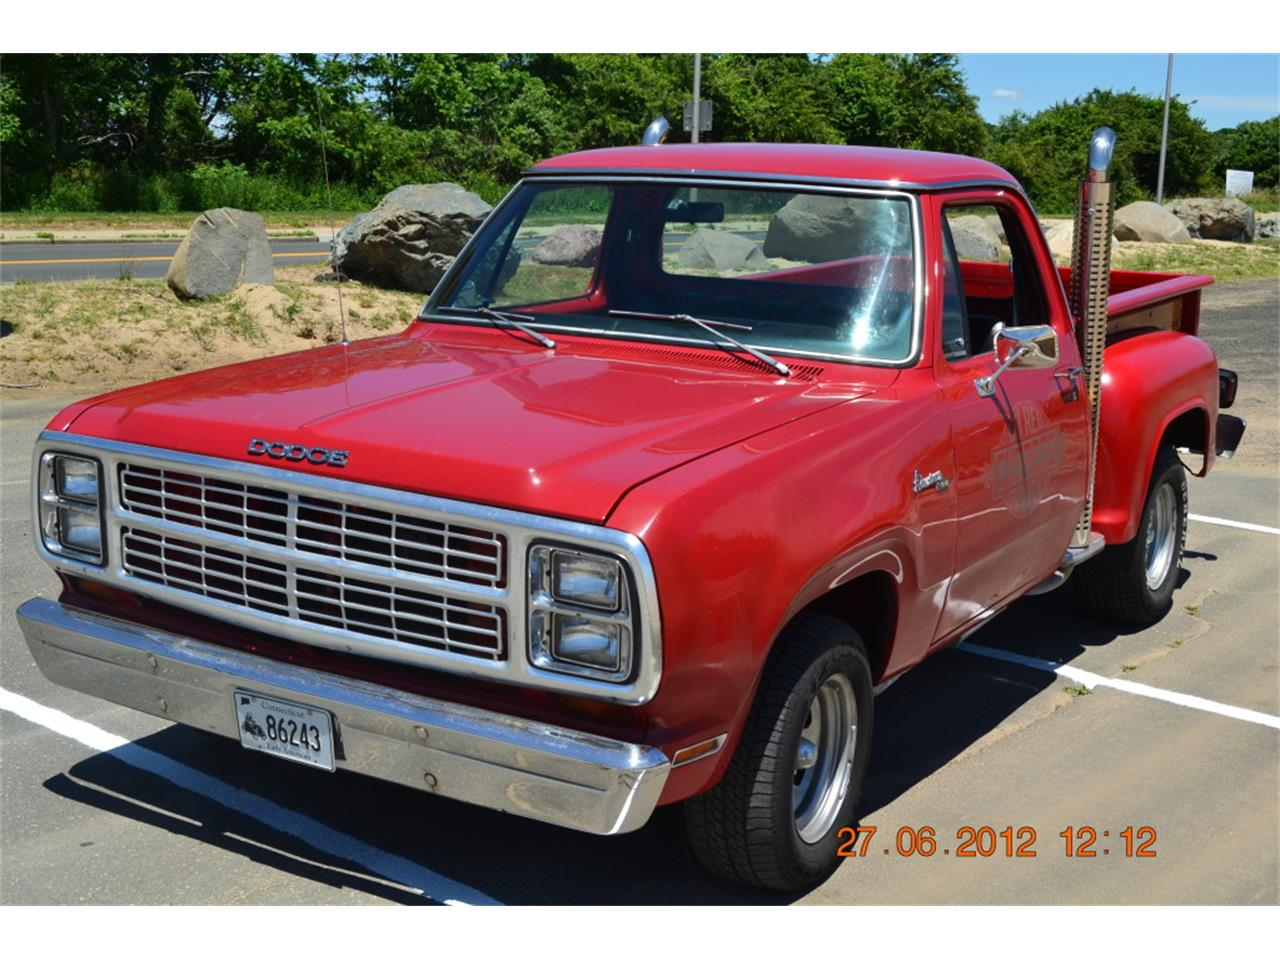 Large Picture of '79 Dodge Little Red Express Offered by a Private Seller - EHSU